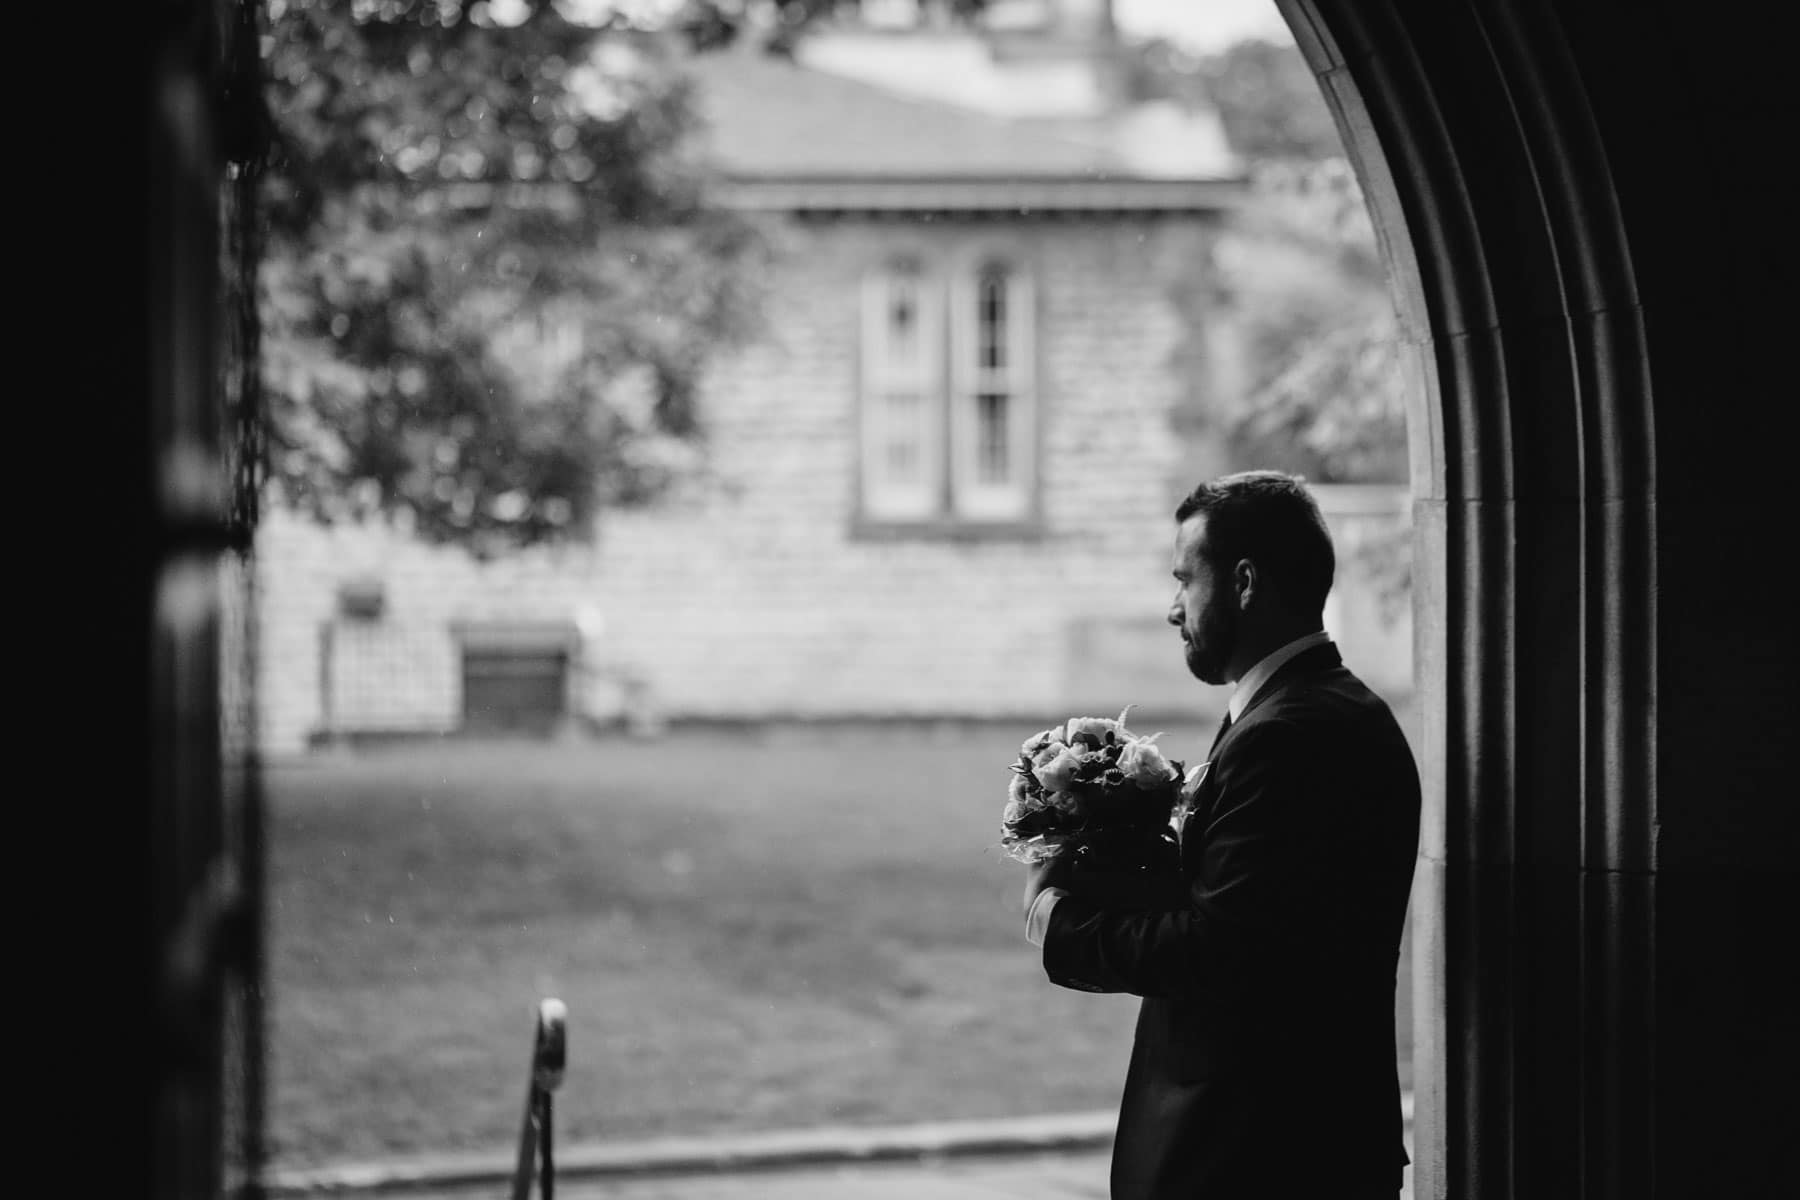 A silhouette of a man standing in the archway of a door waiting for the bride to require help at this Hart House wedding photo.